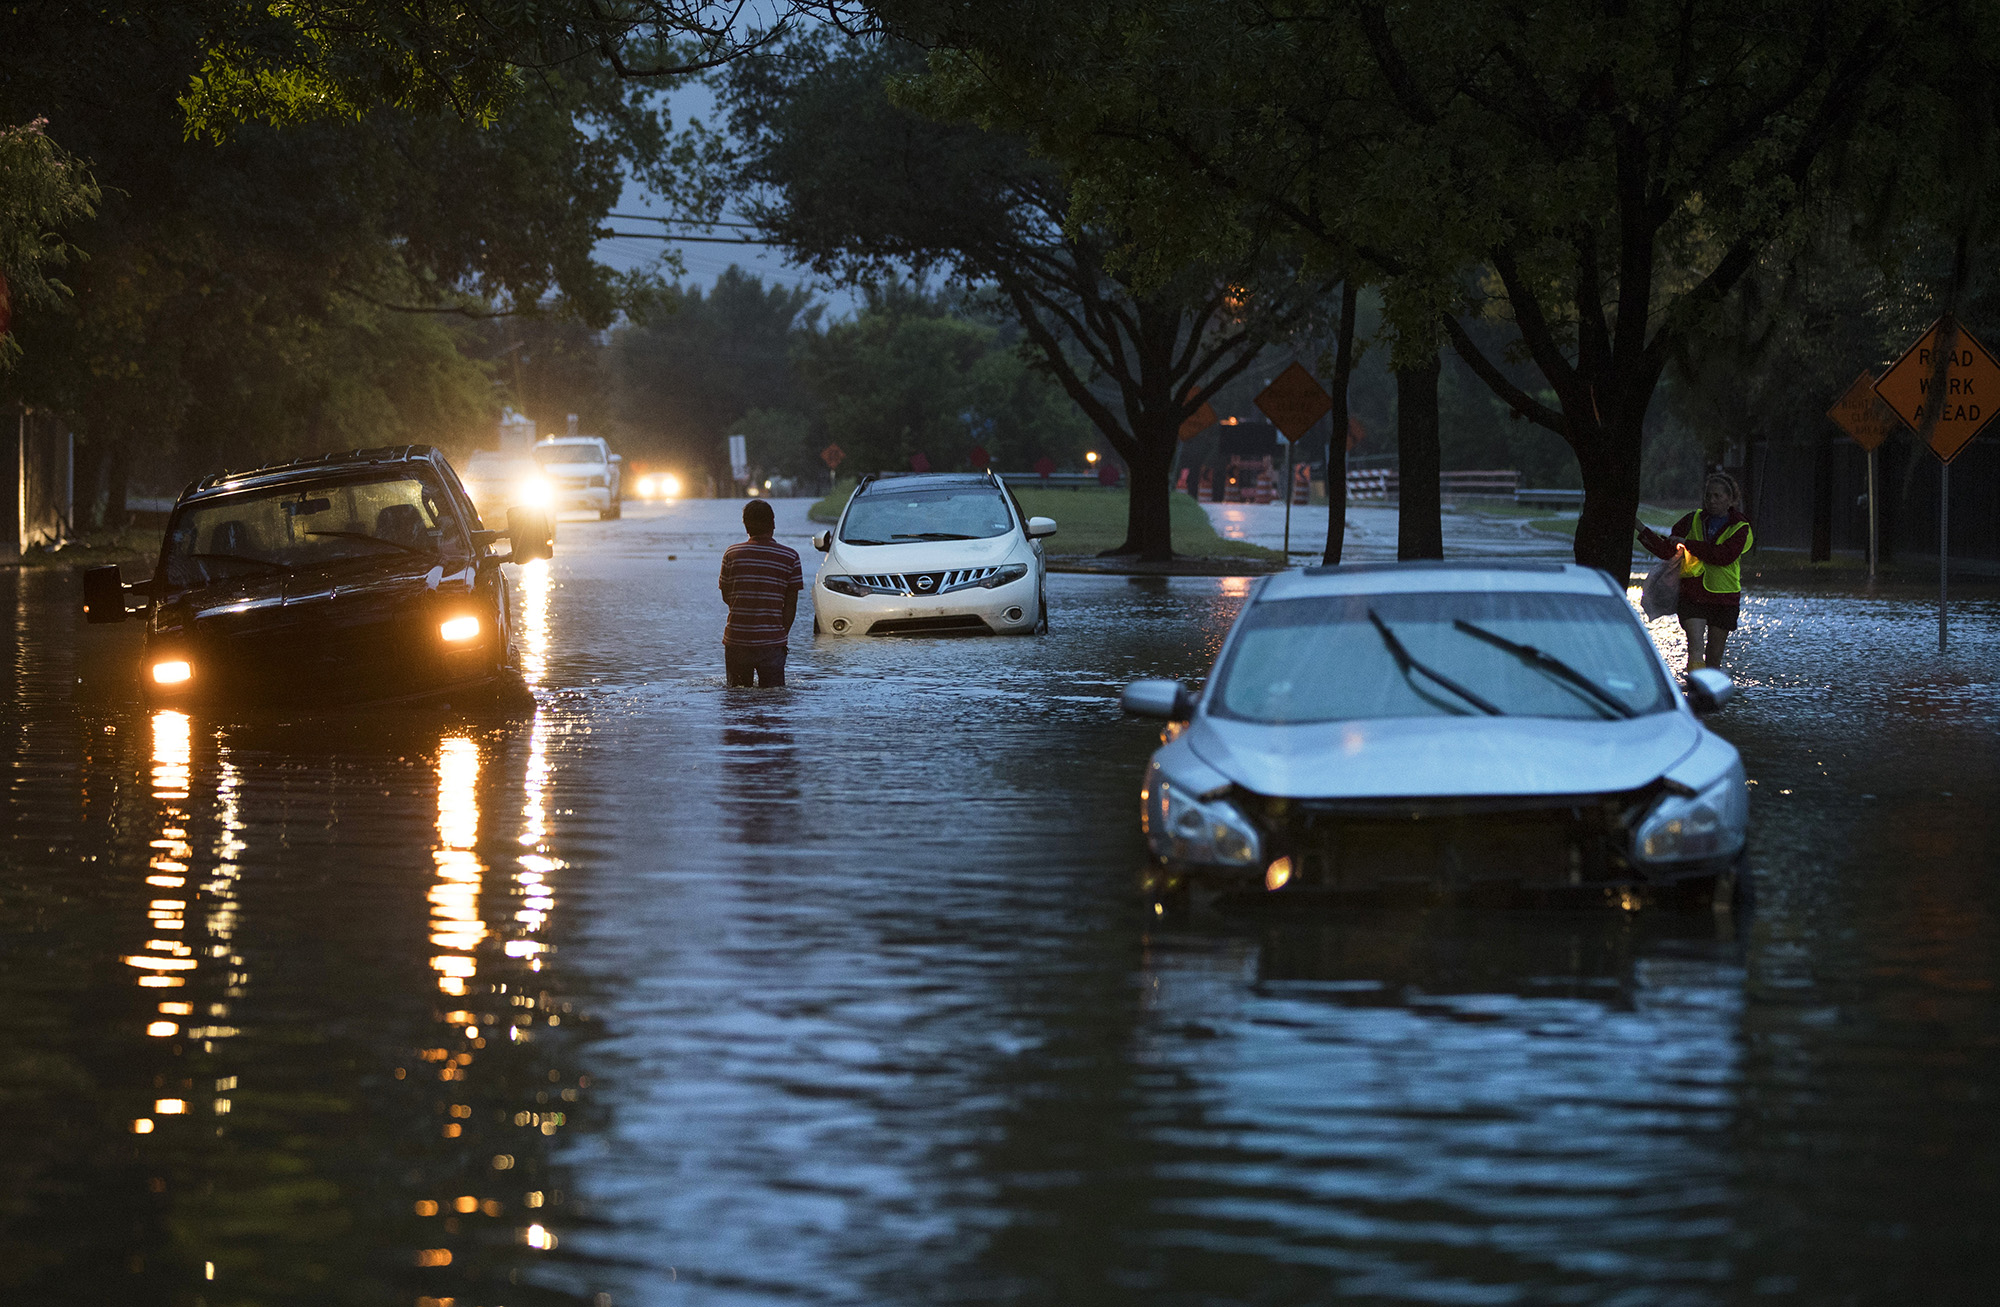 HOUSTON, TX - AUGUST 28: Stranded vehicles sit where they got stuck in high water from Hurricane Harvey on Voss Road in Houston, Texas August 28, 2017. (Photo by Erich Schlegel/Getty Images)